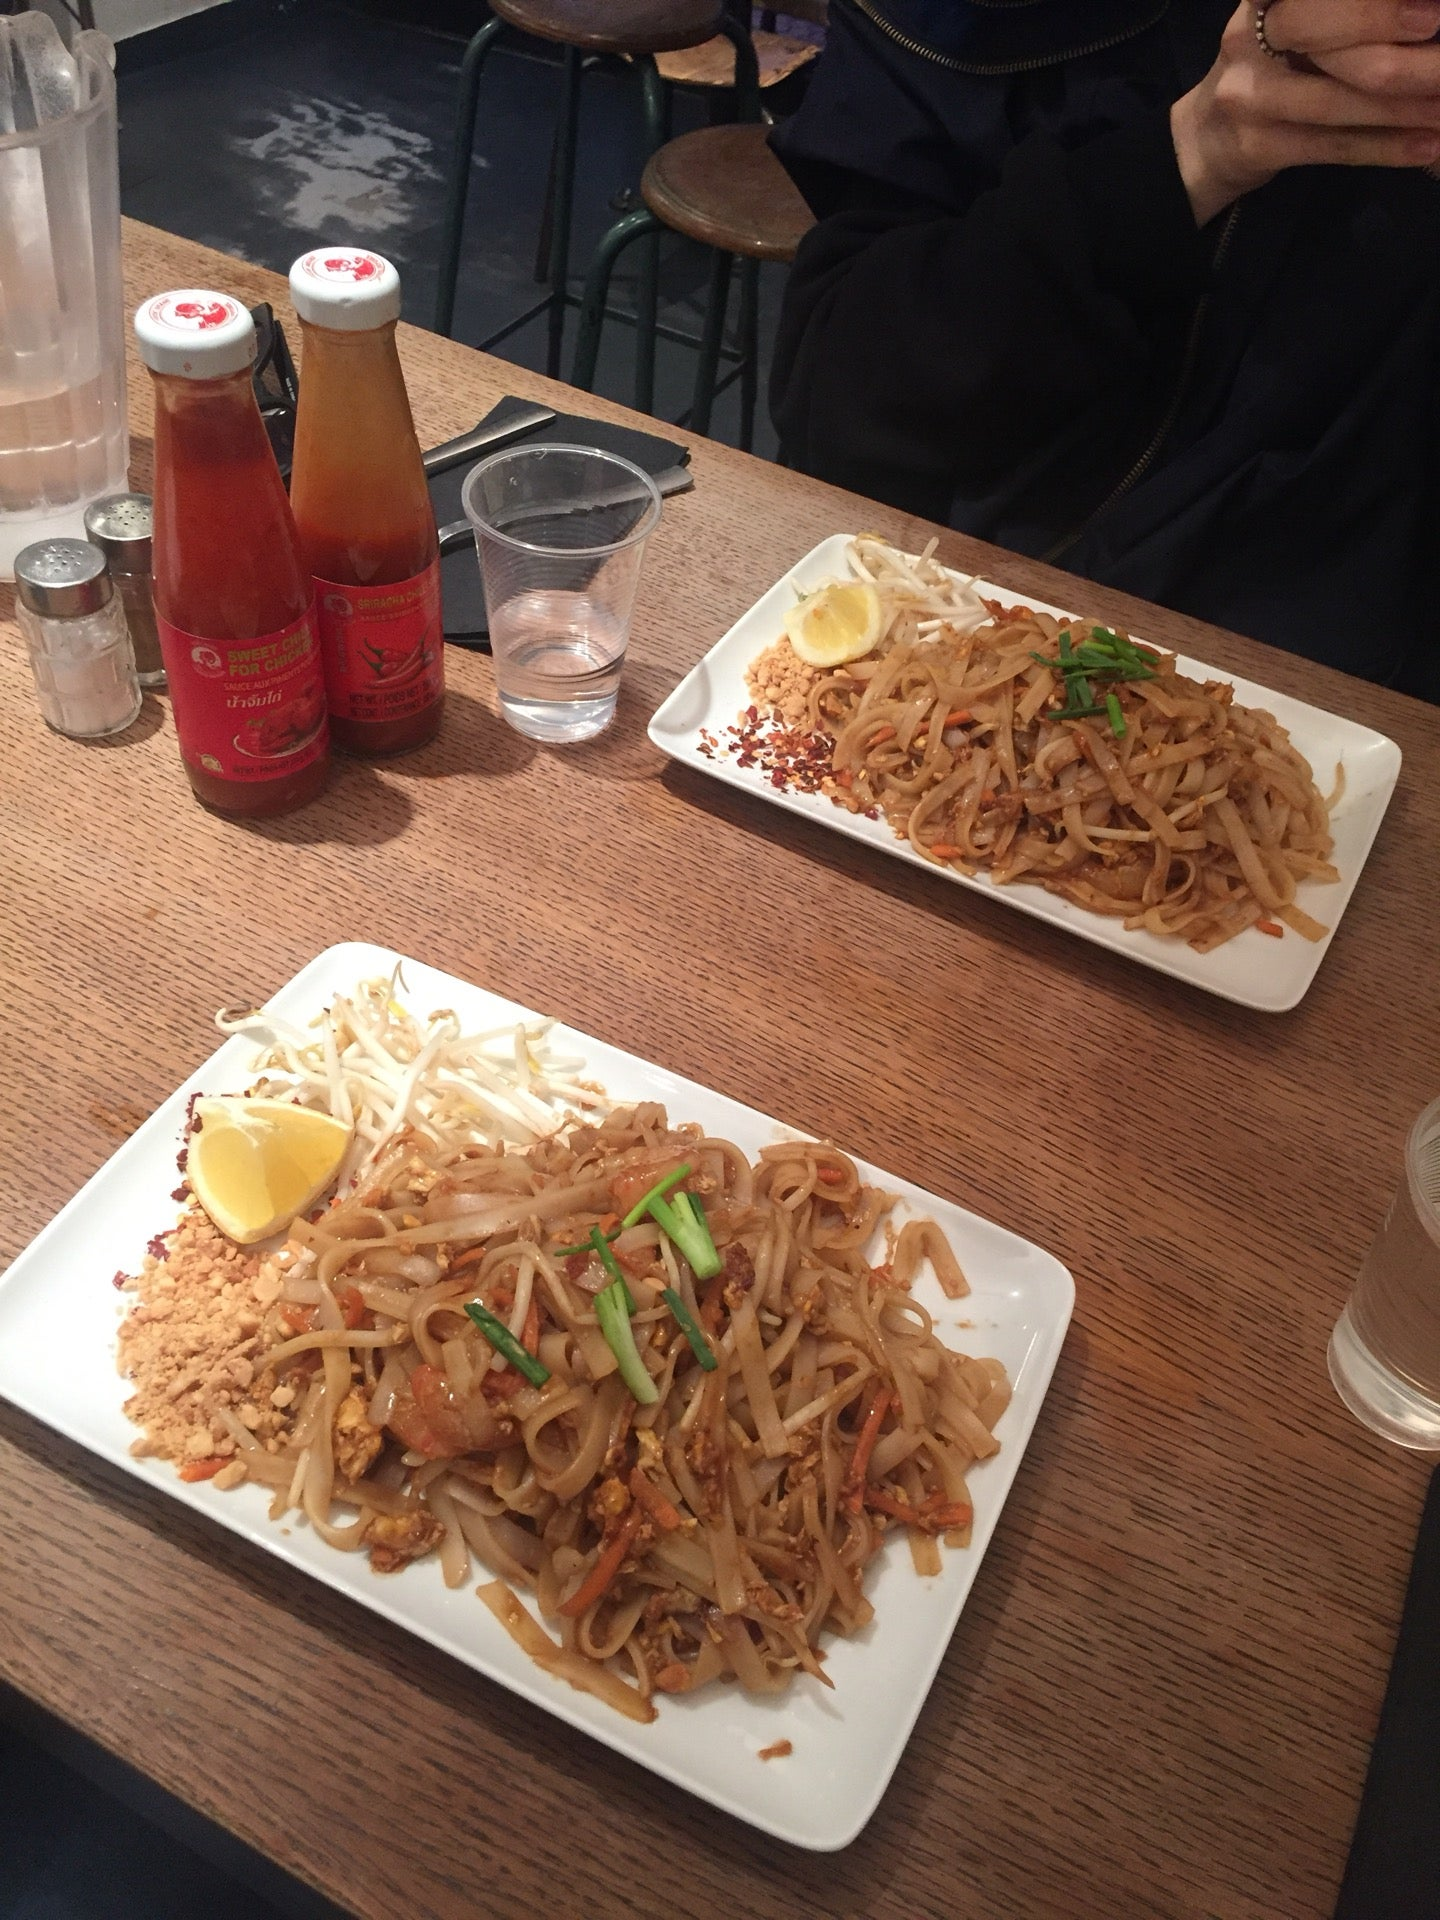 PAD THAI RESTAURANT